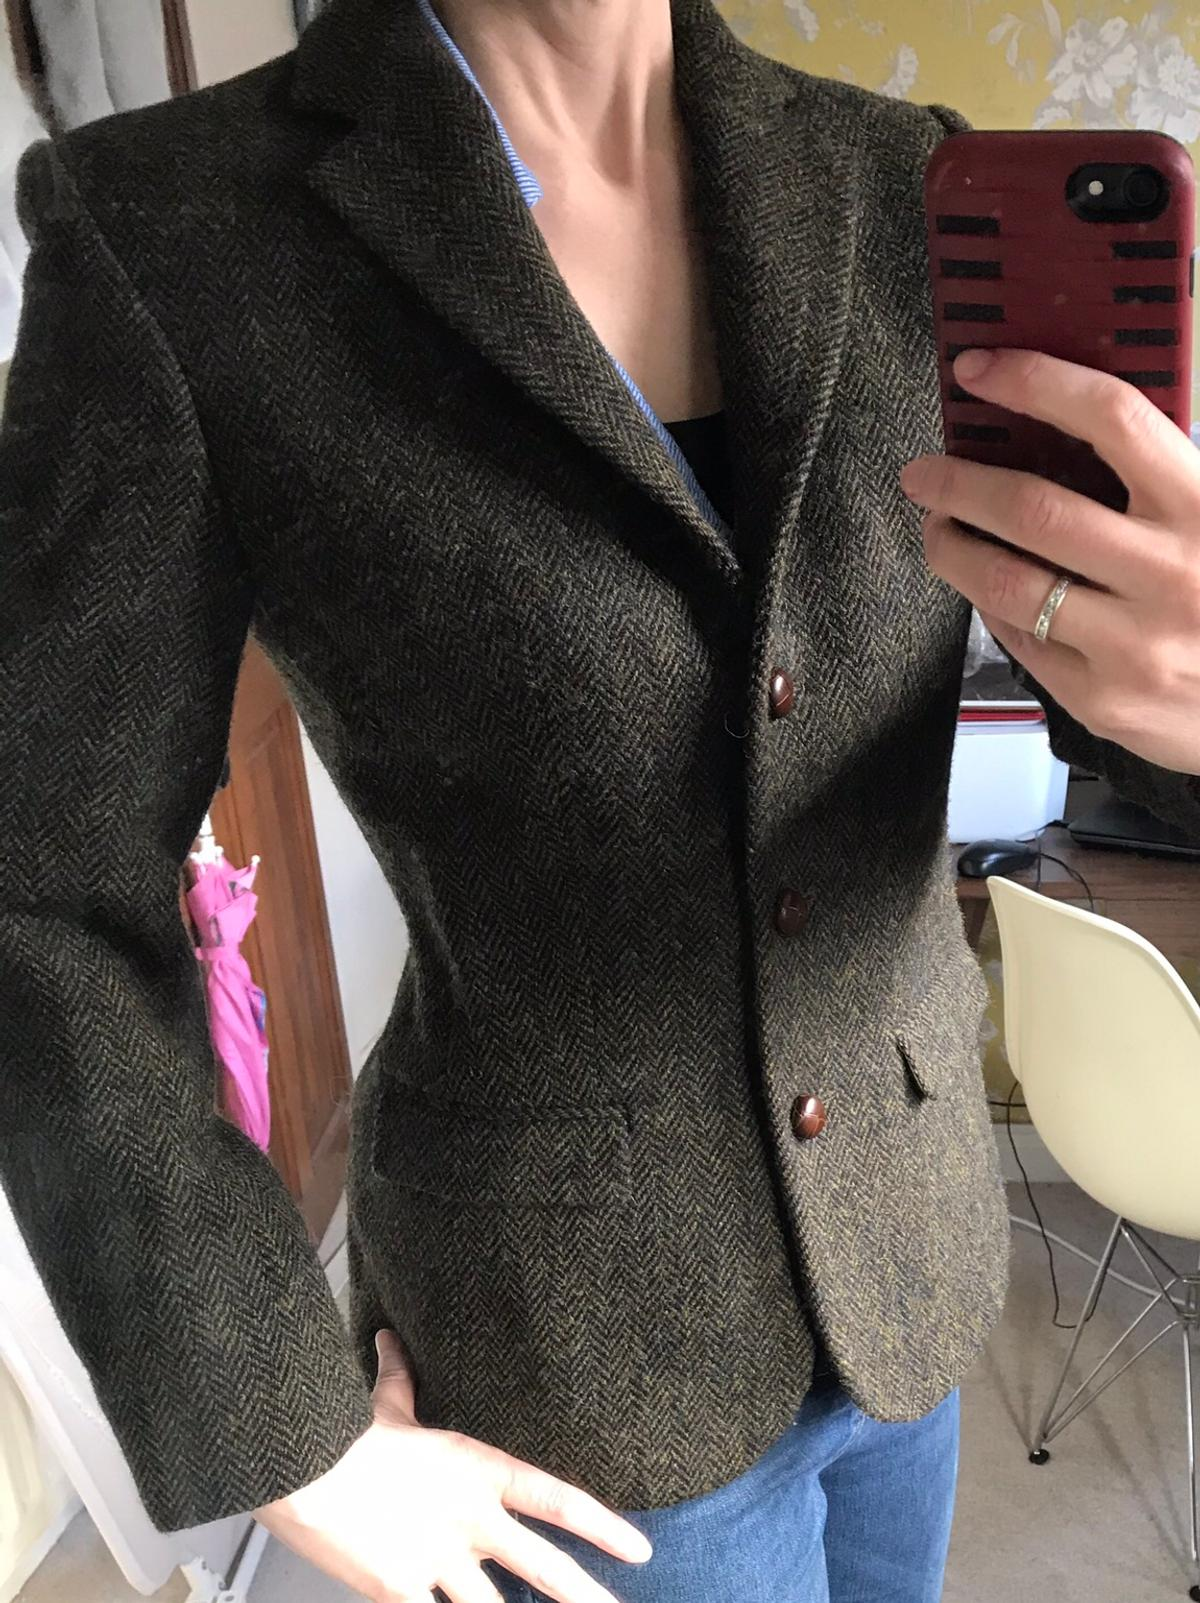 Ladies Evening Jacket in Wyre Forest for £55.00 for sale